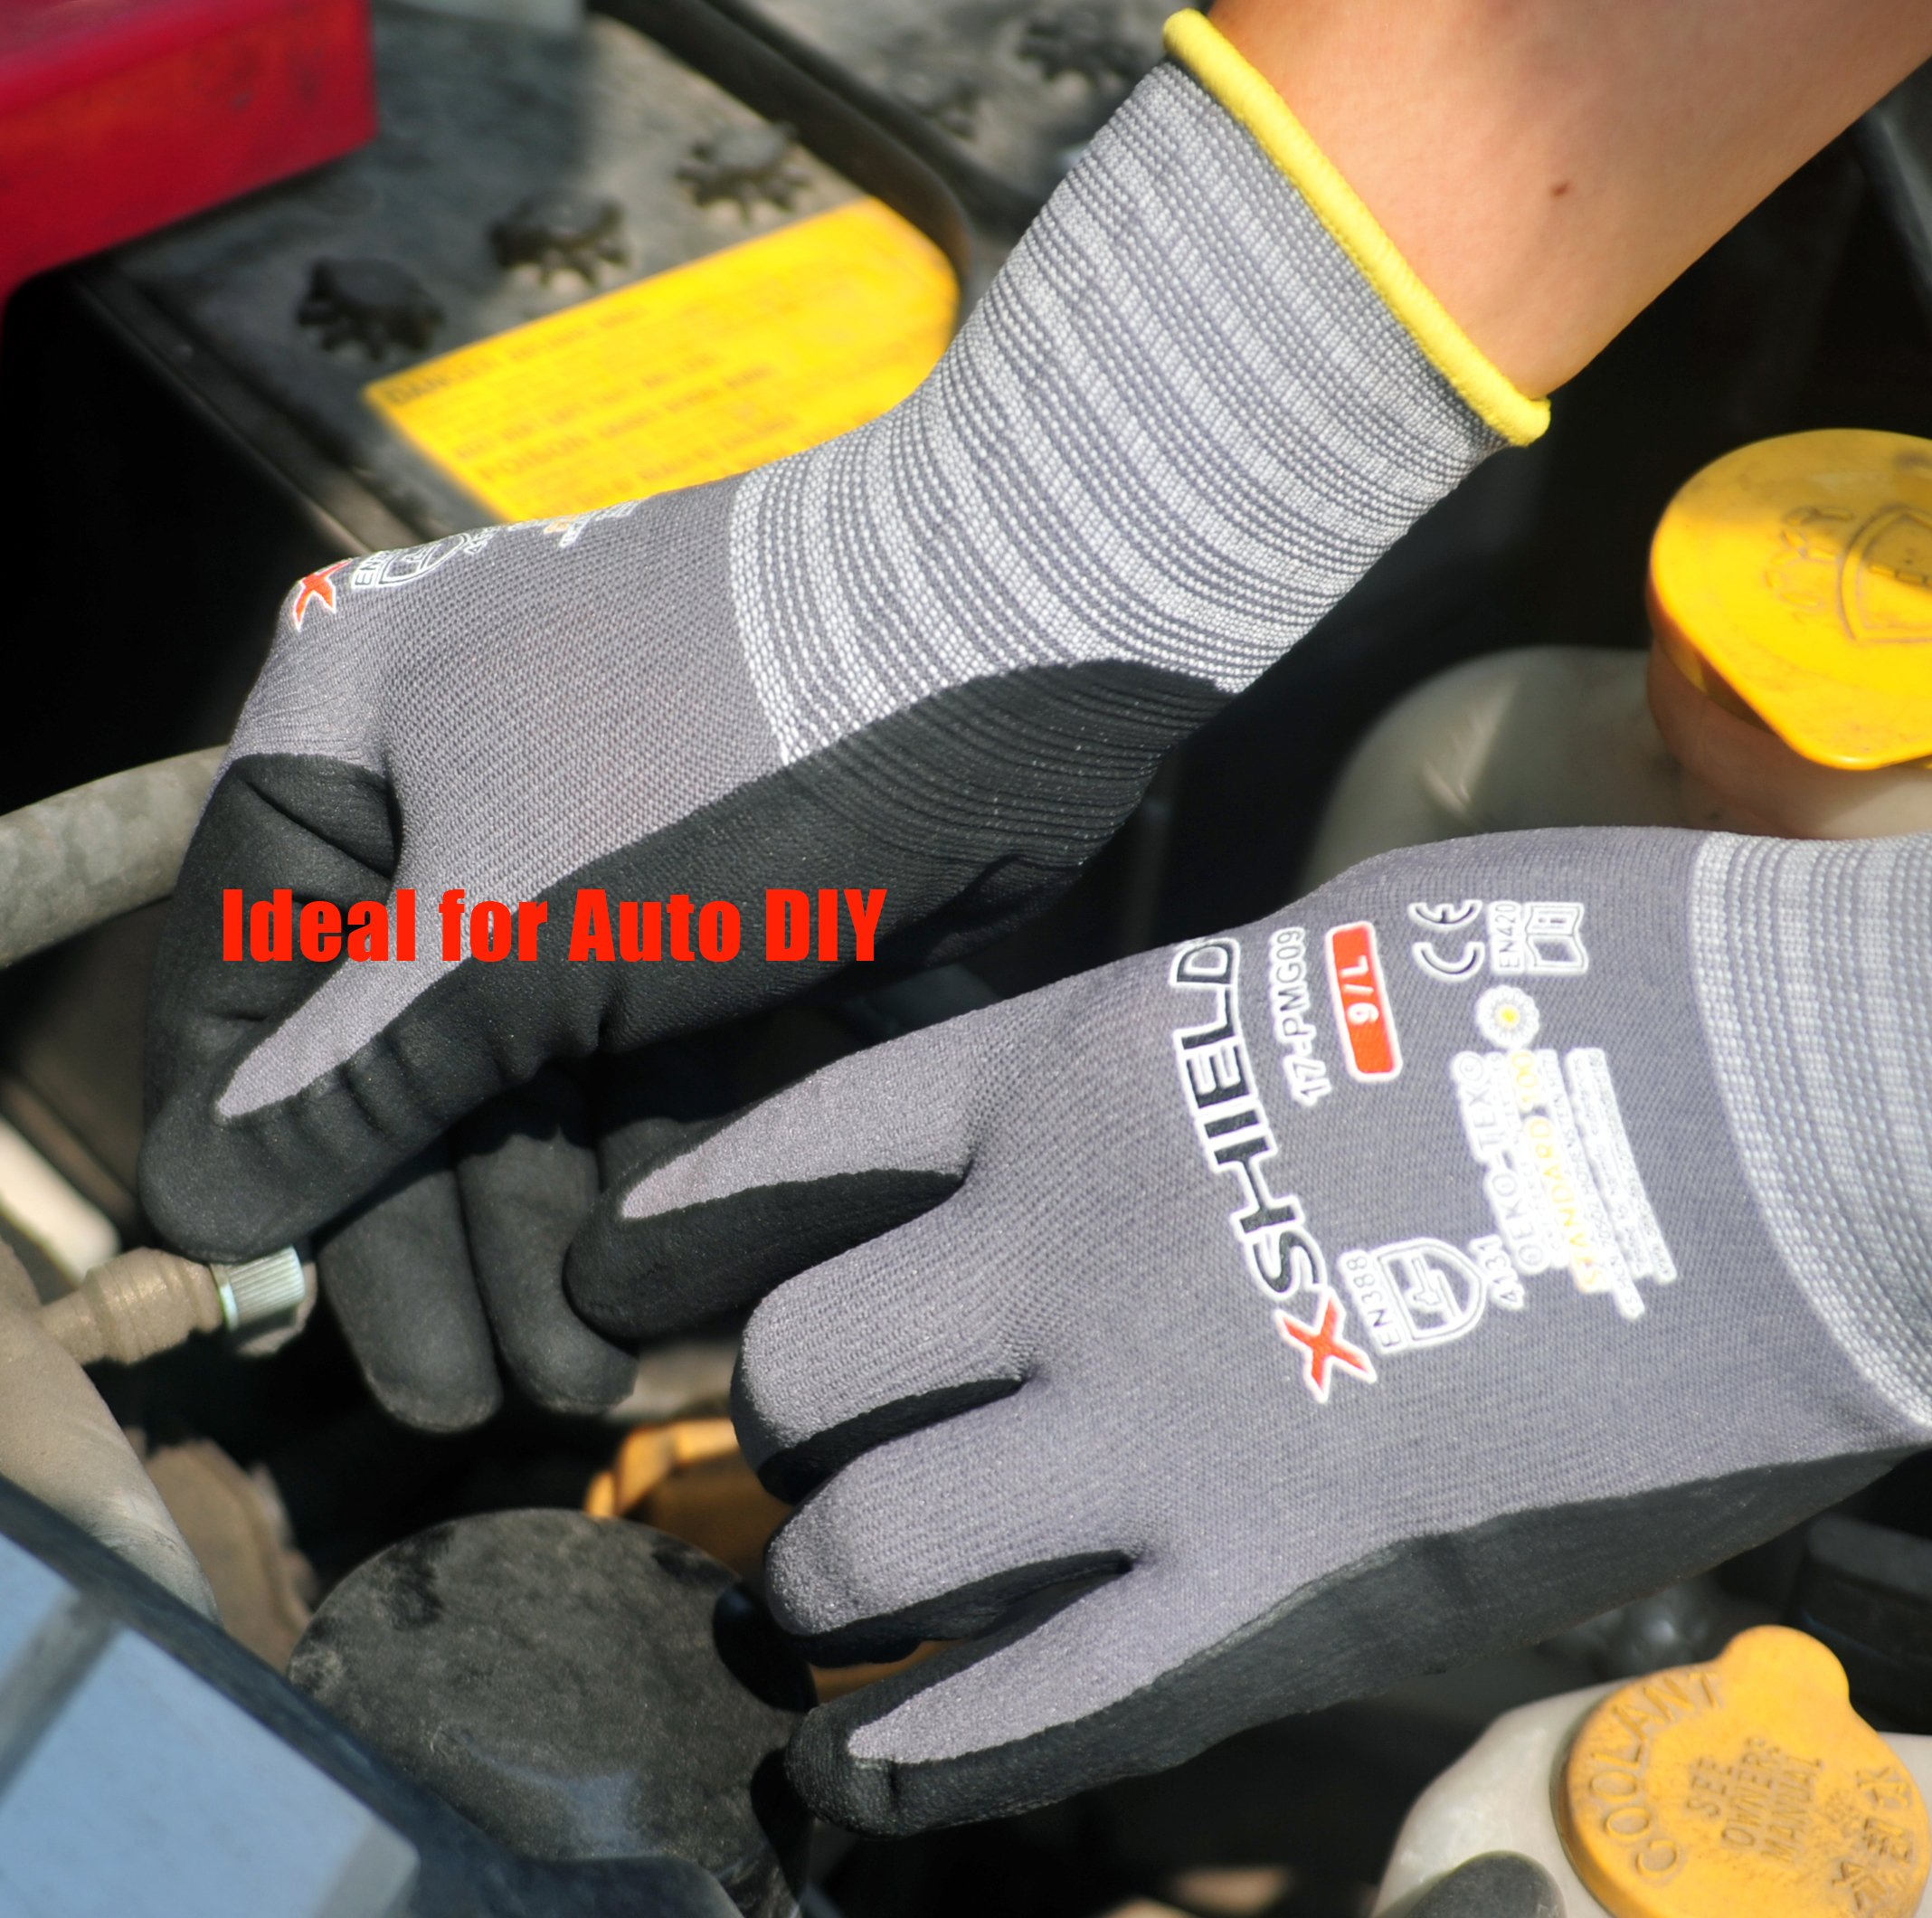 XSHIELD 17-PMG,Ultimate-Nylon, Micro-Foam Nitrile Grip Safety Work Gloves for General Purpose, OKEO-Tex Certificated,Ideal for Auto Repair, DIY,Home Improvement,12 Pairs(Large) by X-Shield (Image #5)